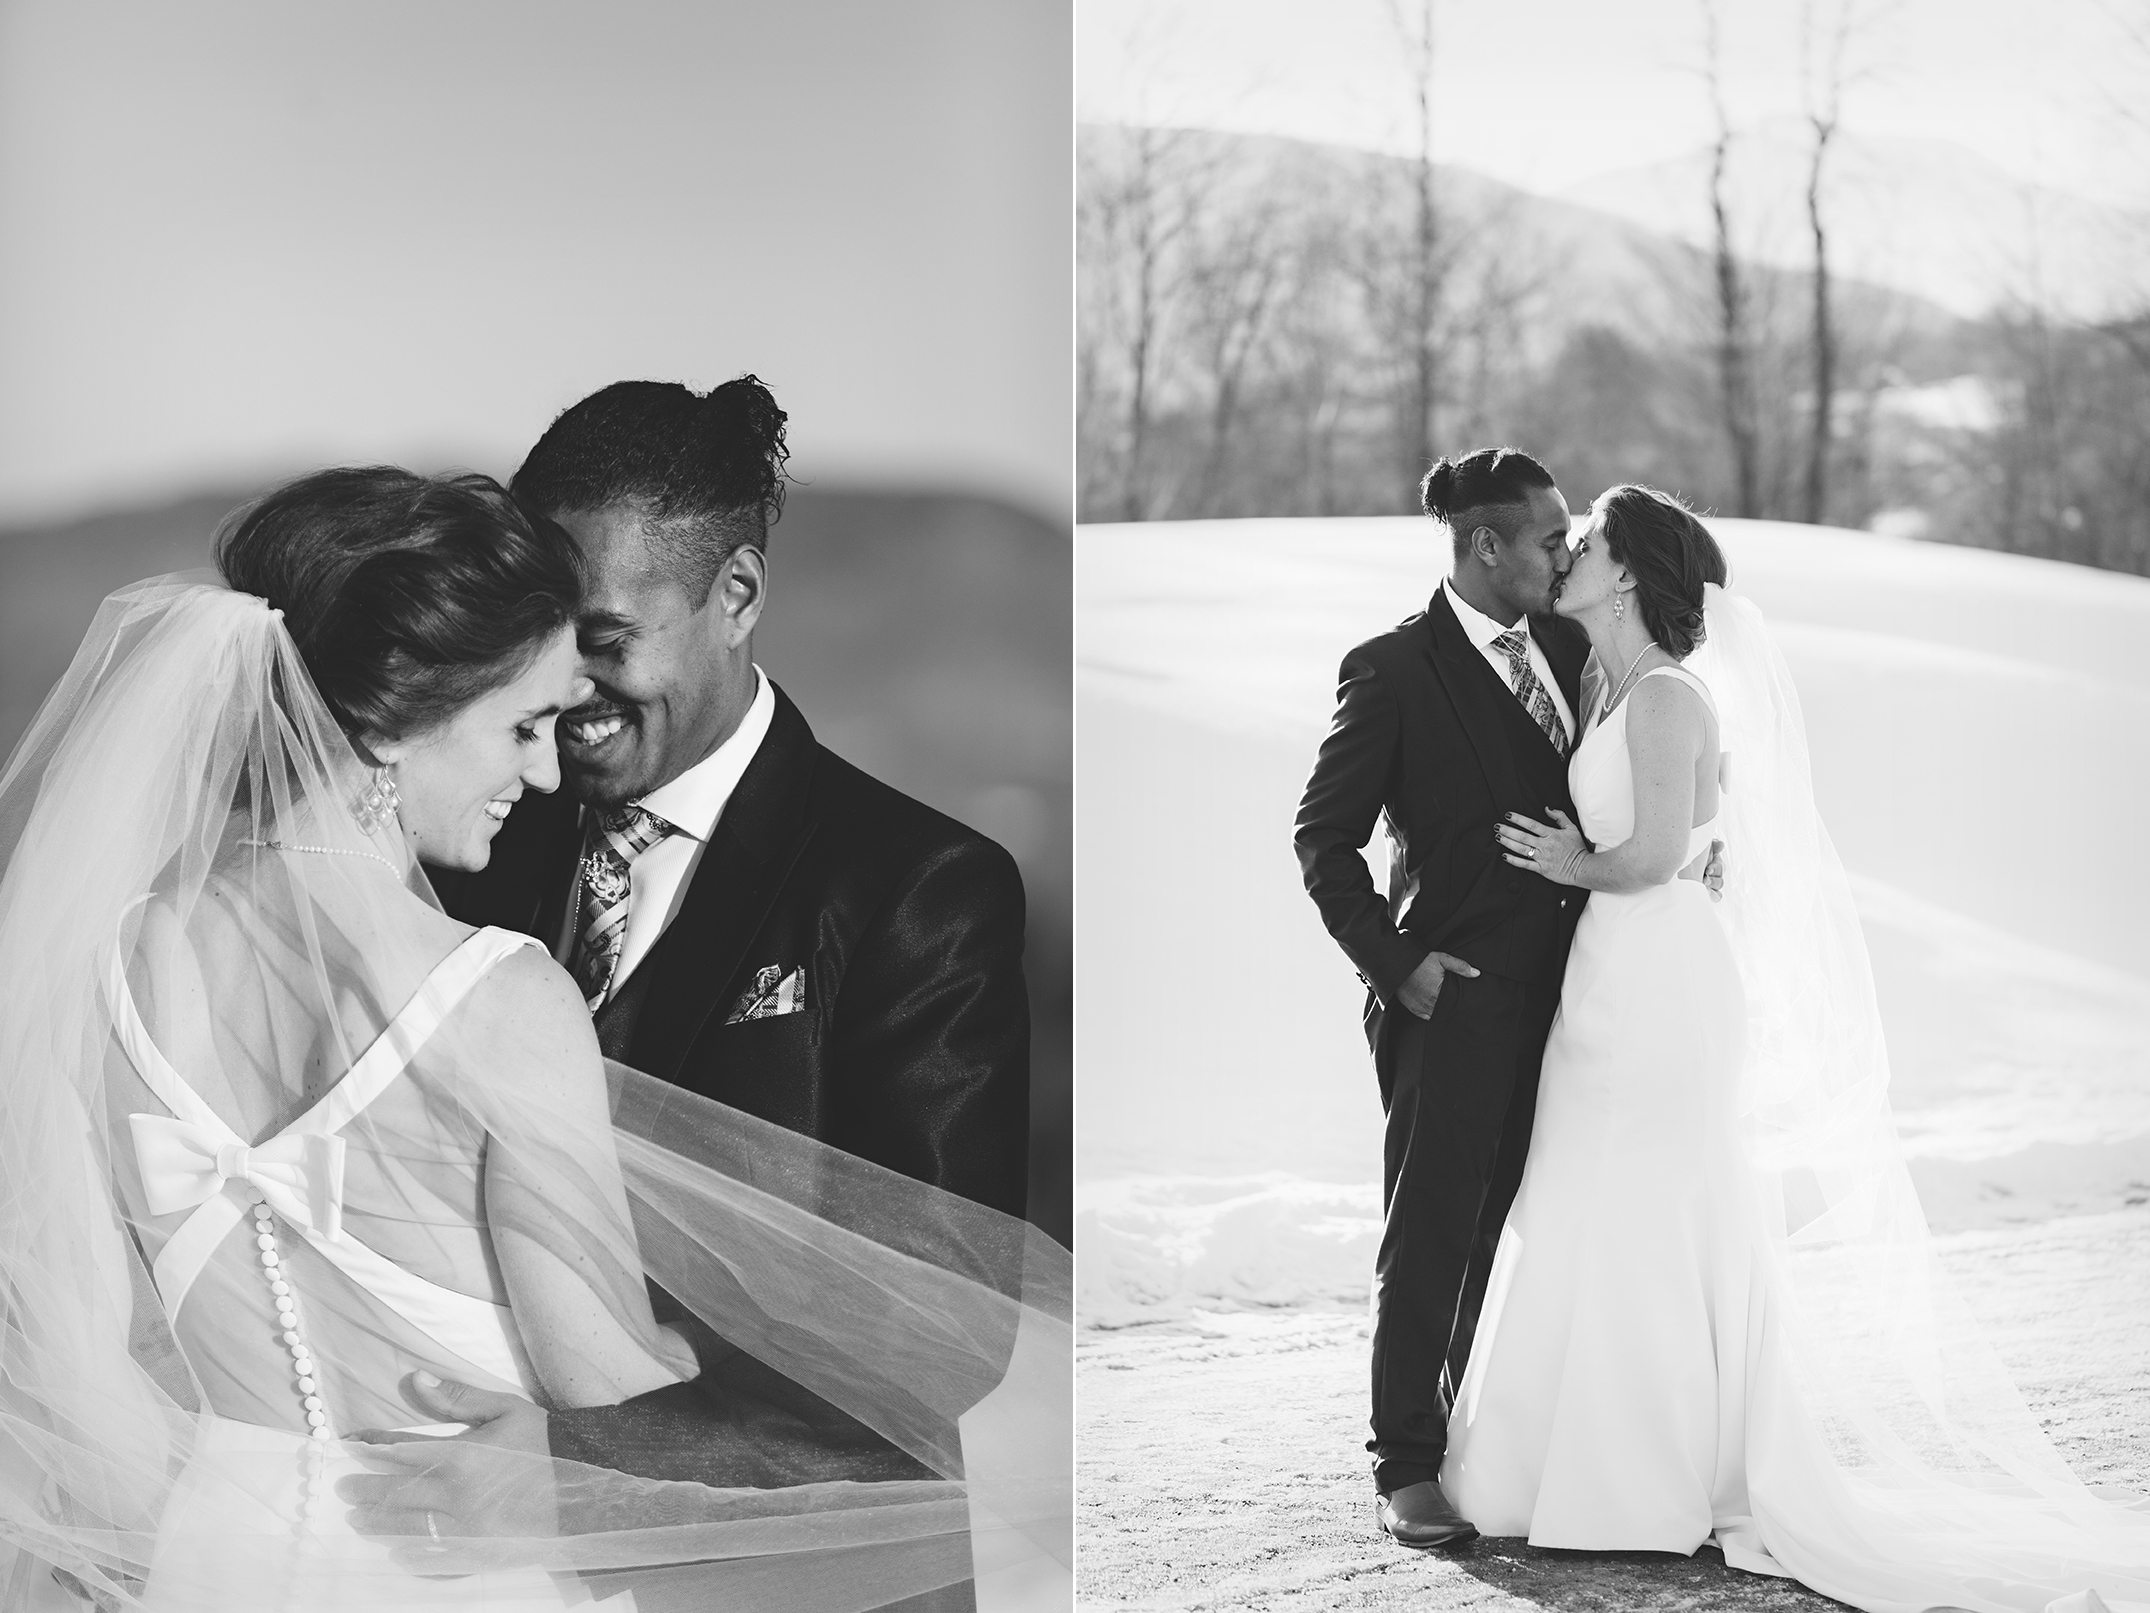 vermont winter wedding photographer.jpg